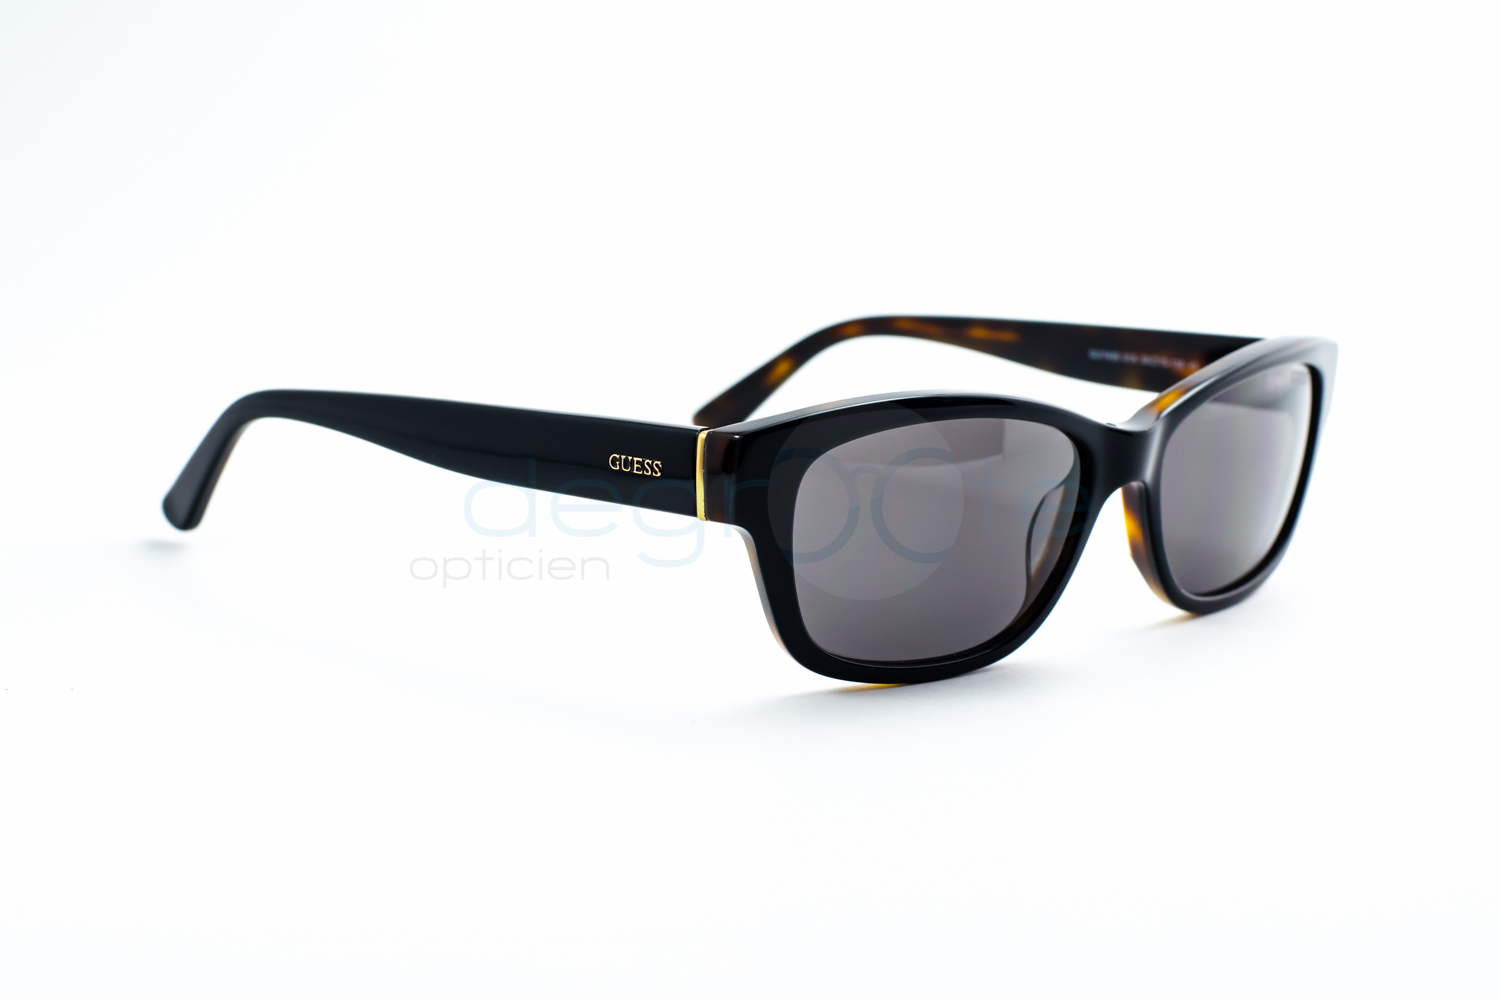 GUESS Solaires collection 2016   Opticien Degroote 0dd8c643cf09